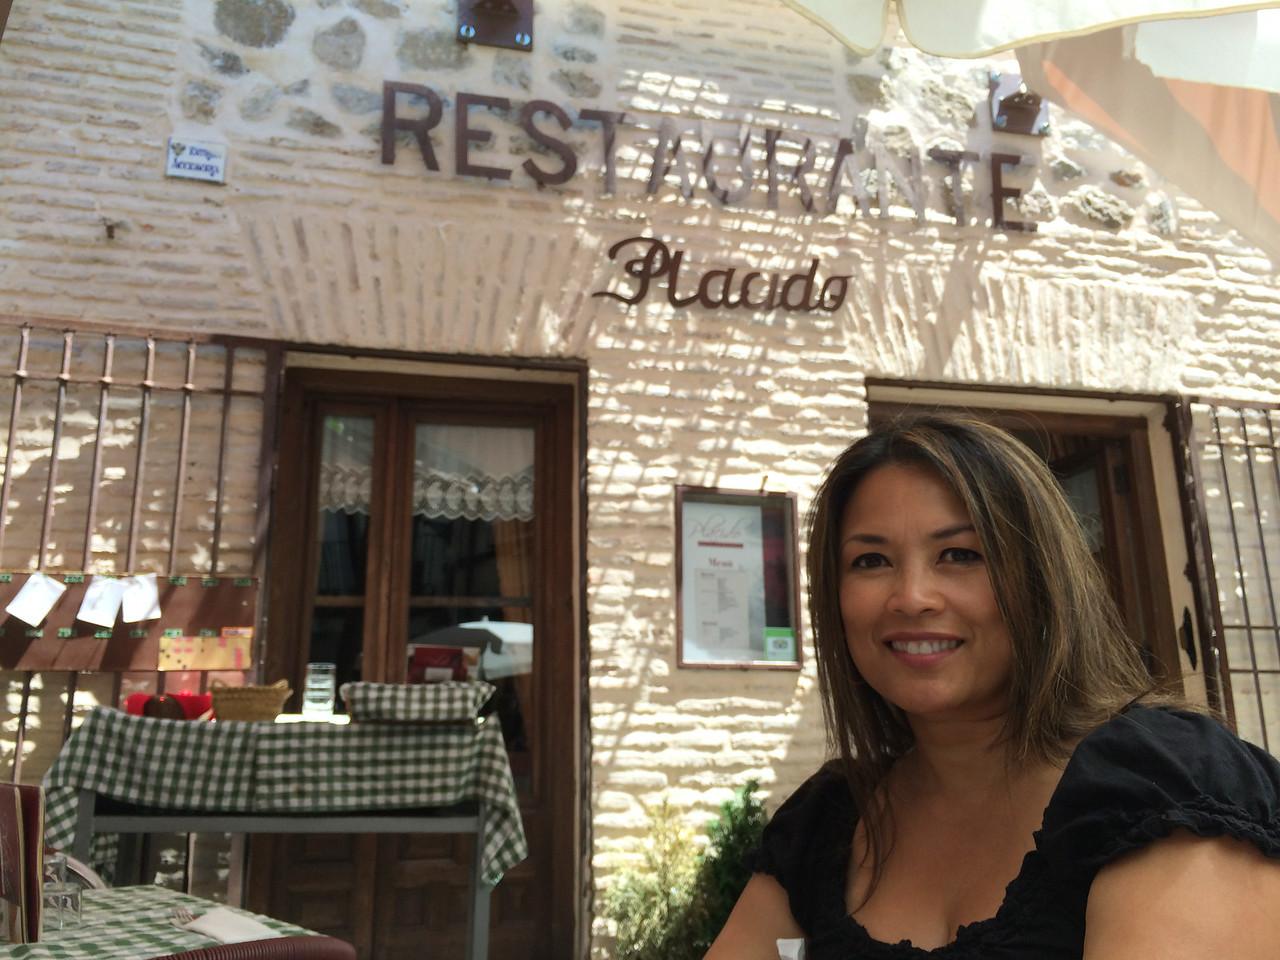 All the history, art, and architecture made us hungry. We headed back to the Jewish quarter to eat at Placido restaurant.